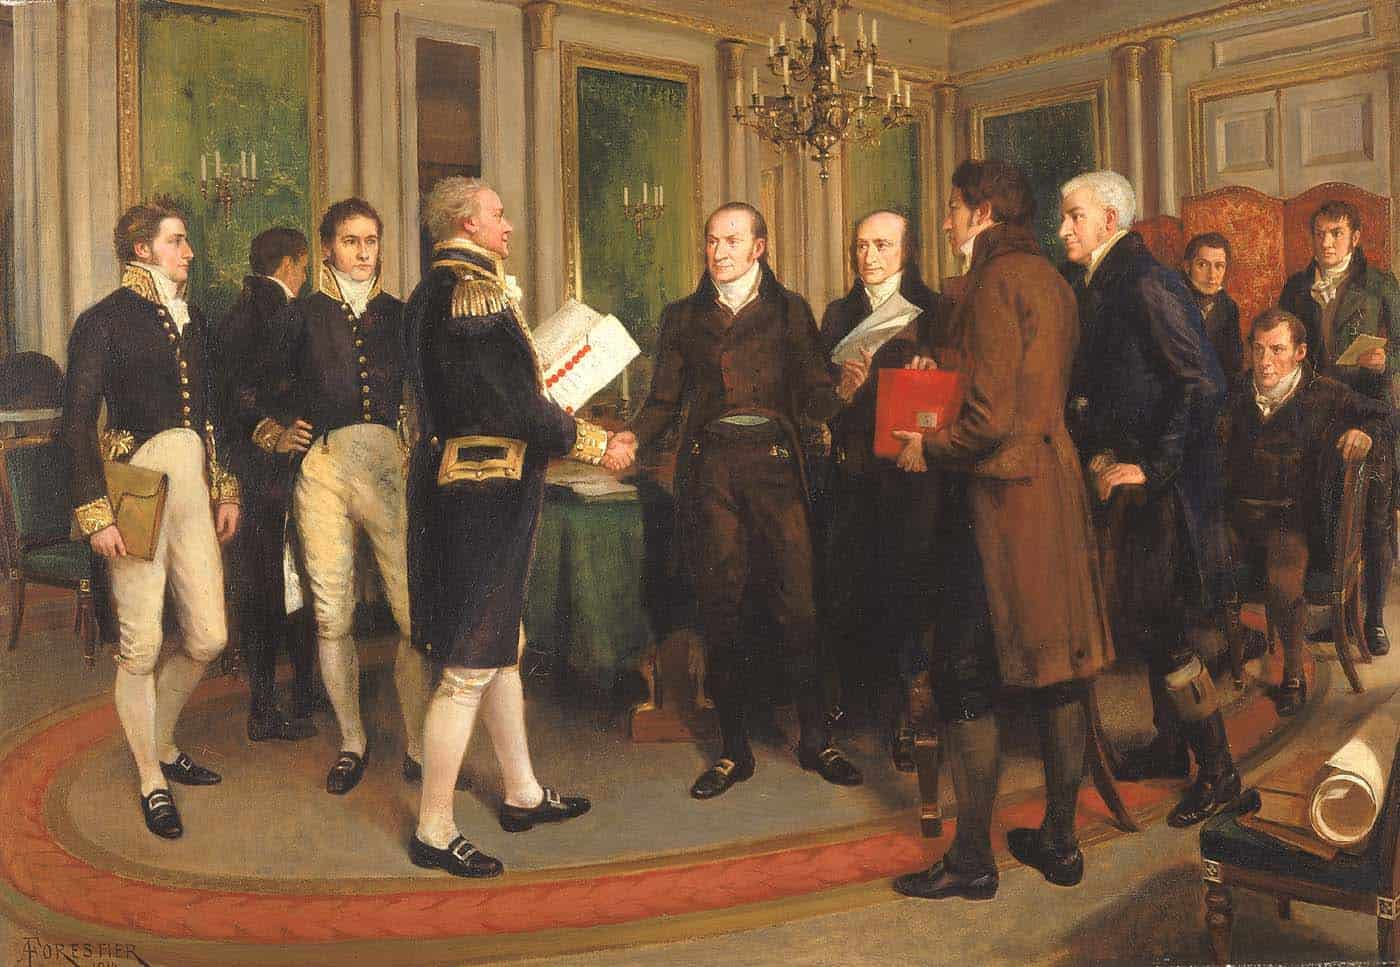 Signing of Treaty of Ghent (1814)